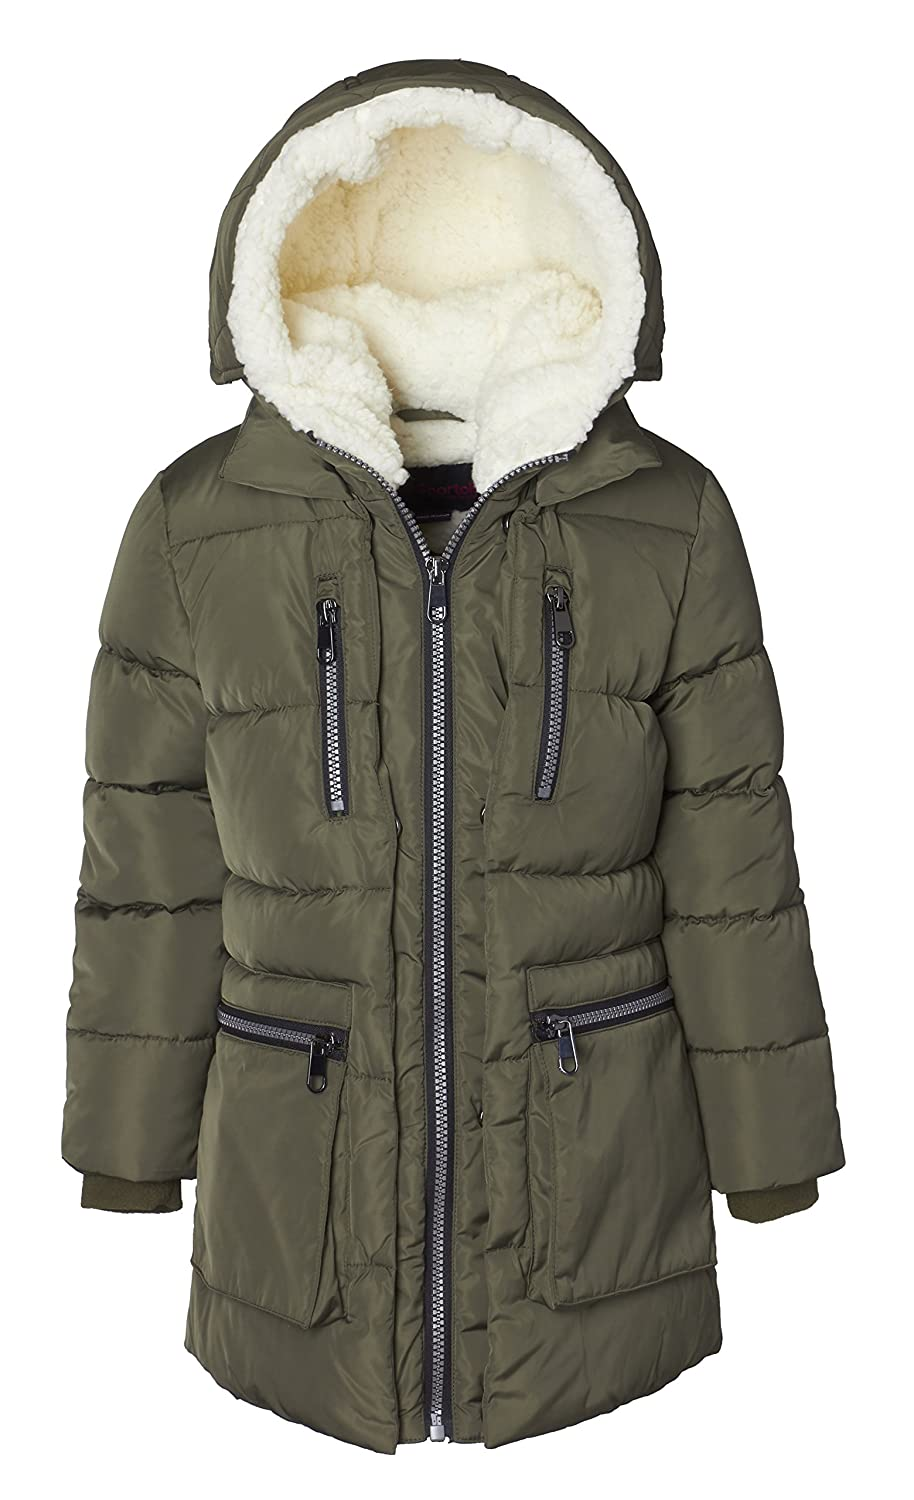 Sportoli Girls' Fleece Lined Heavy Quilted Fashion Detailed Jacket Coat Attached Sherpa Lined Hood